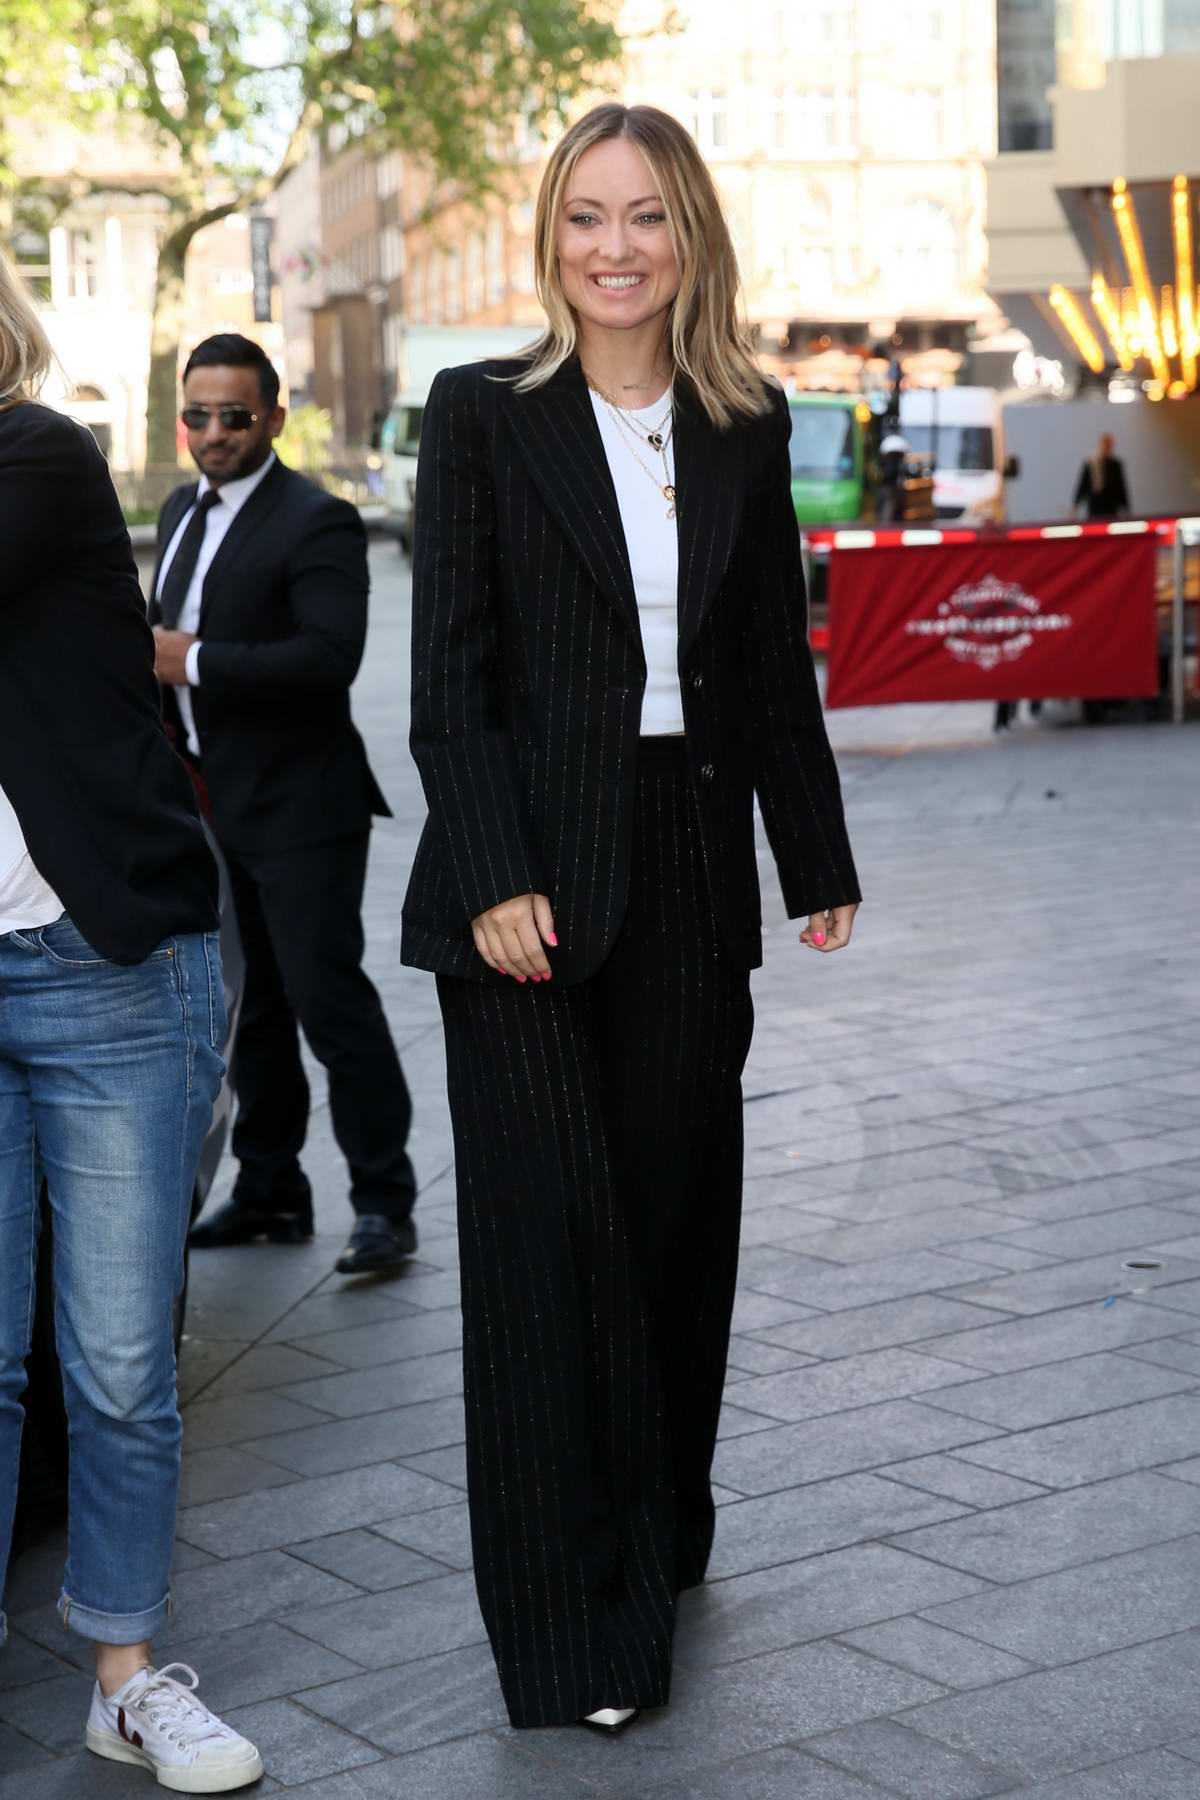 Olivia Wilde wears a black pinstriped suit as she arrives at Global studios in London, UK